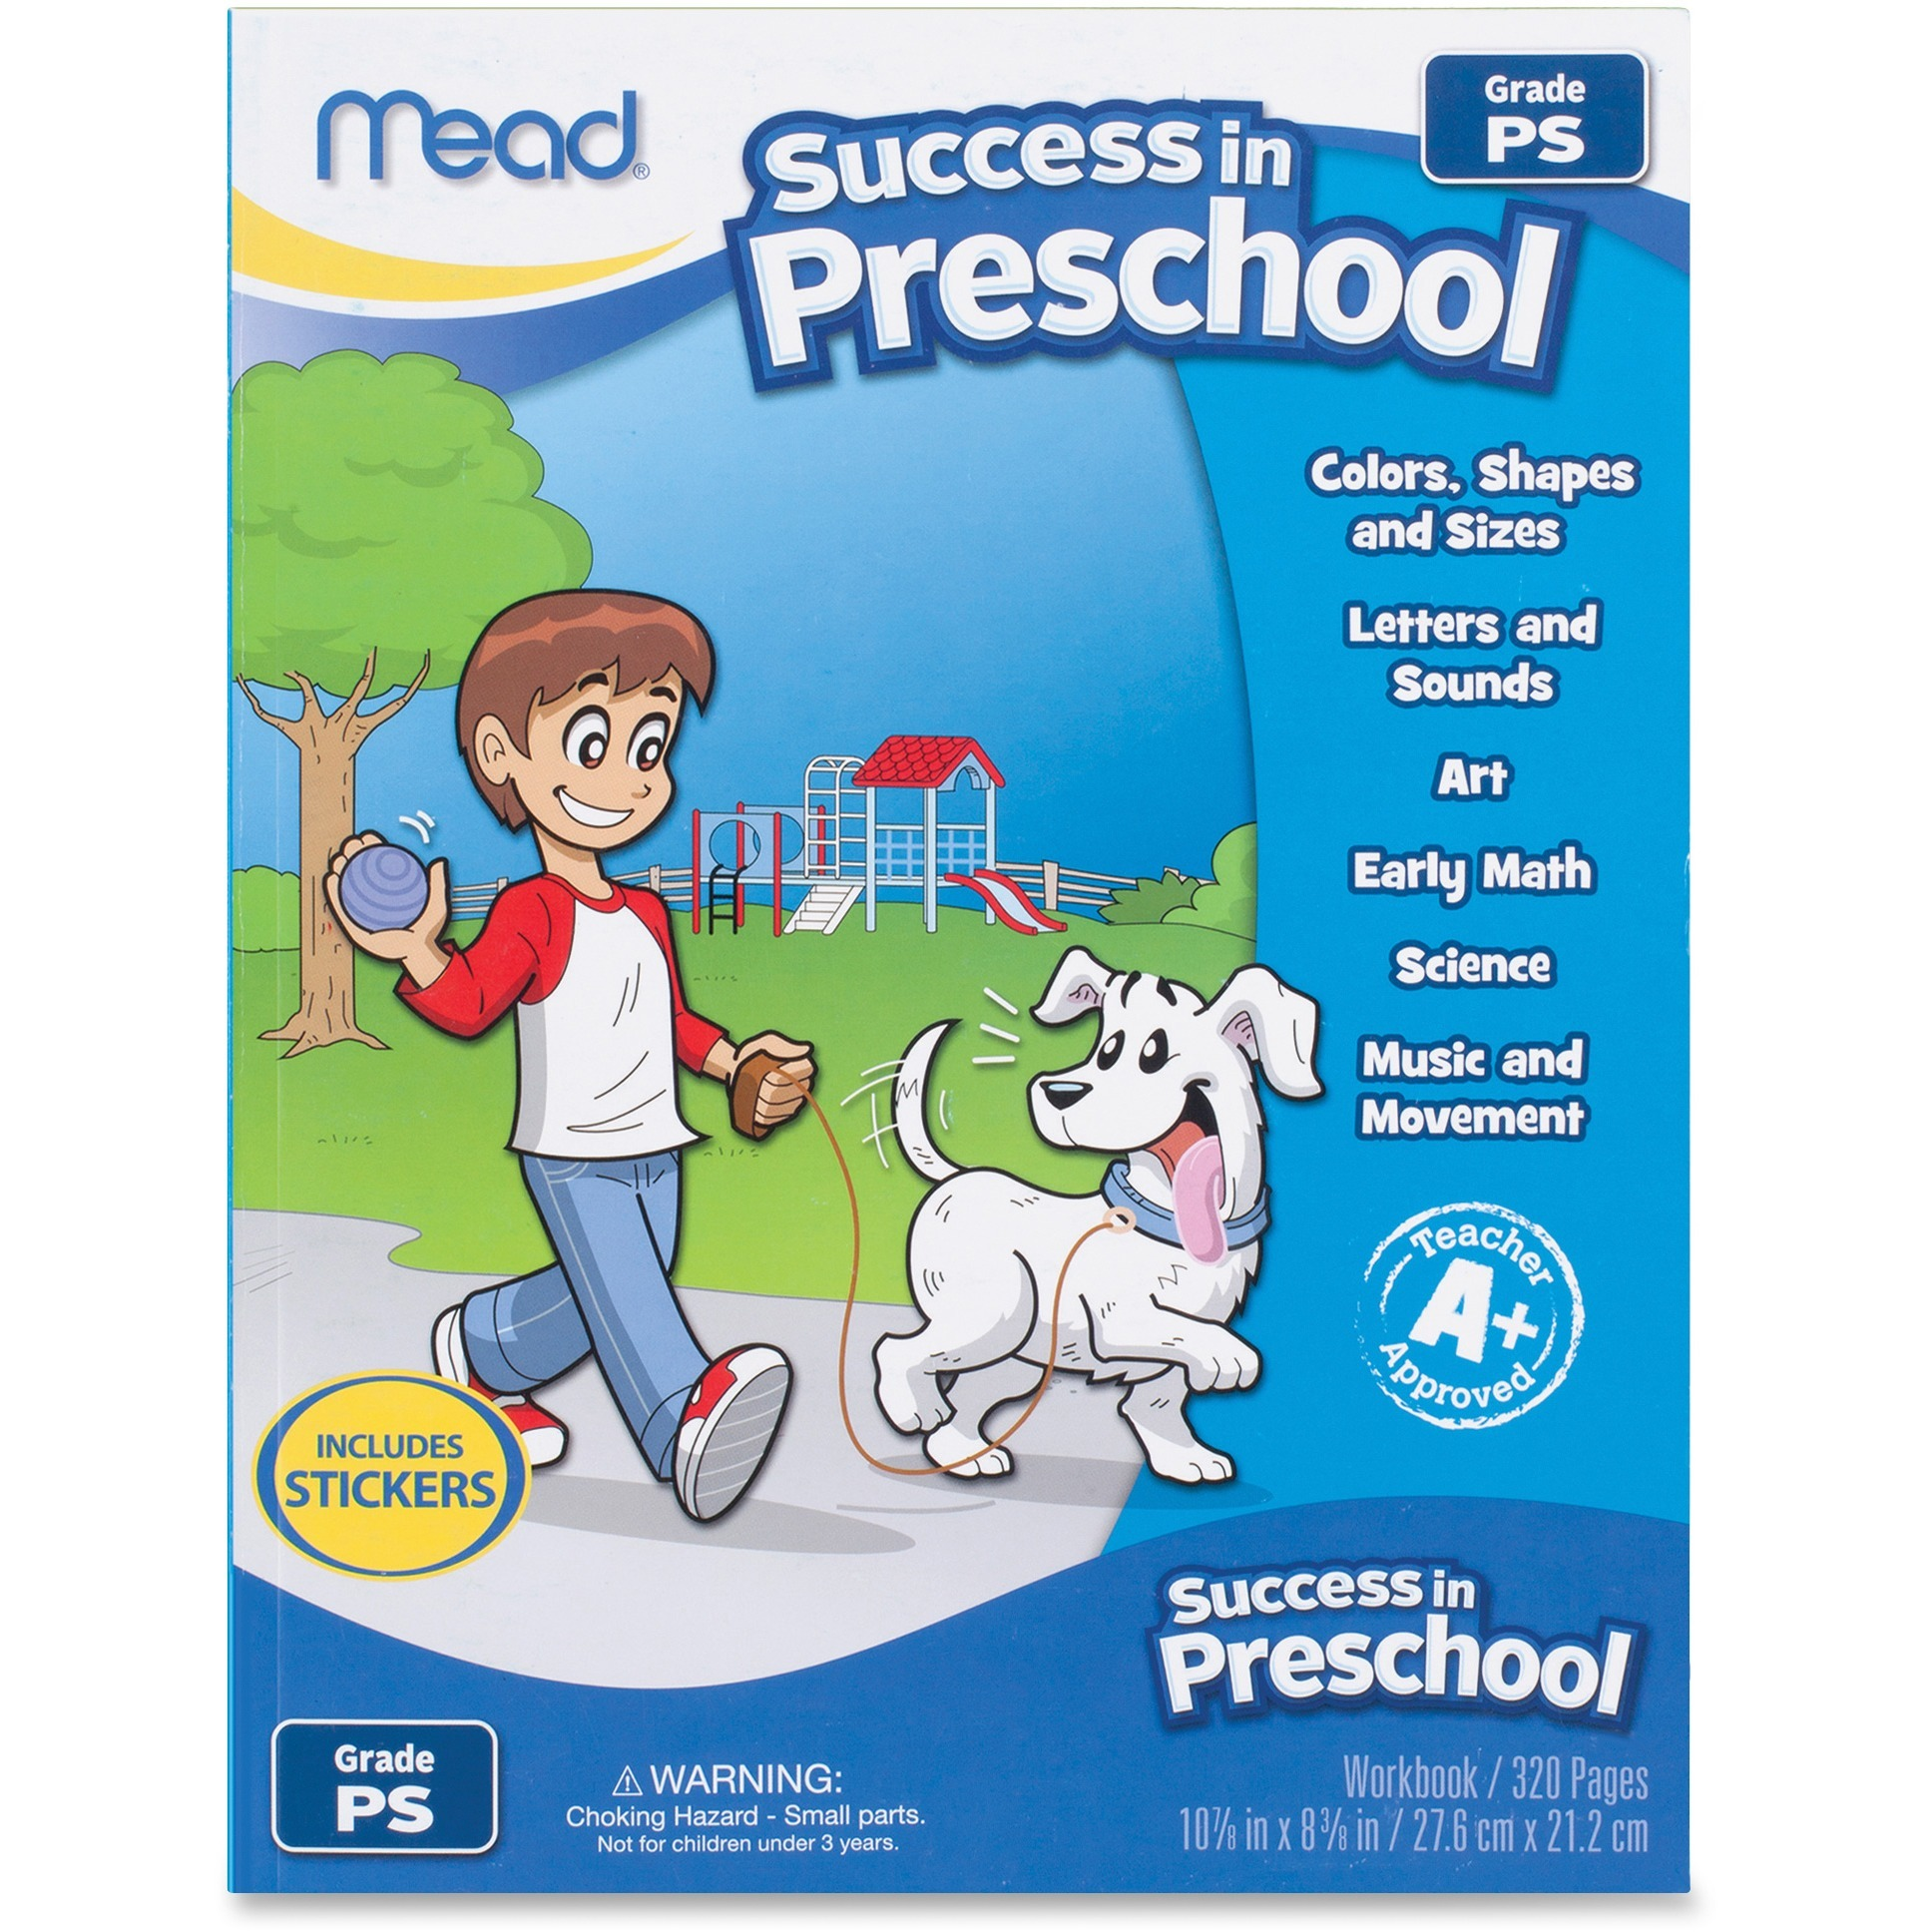 Mead Success in Preschool Workbook (54263) - Walmart.com